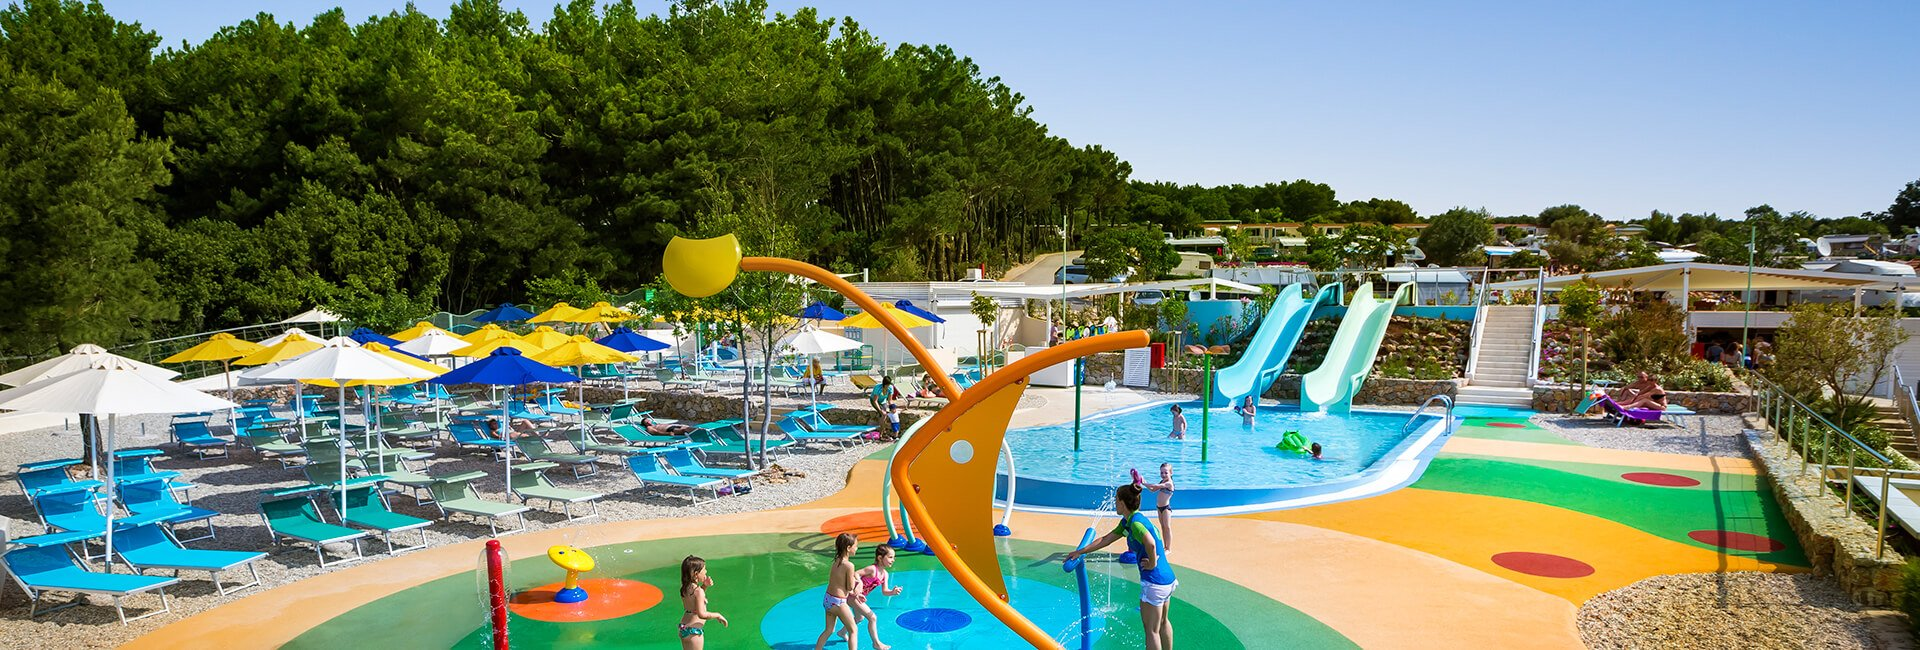 Krk Premium Camping Resort by Valamar